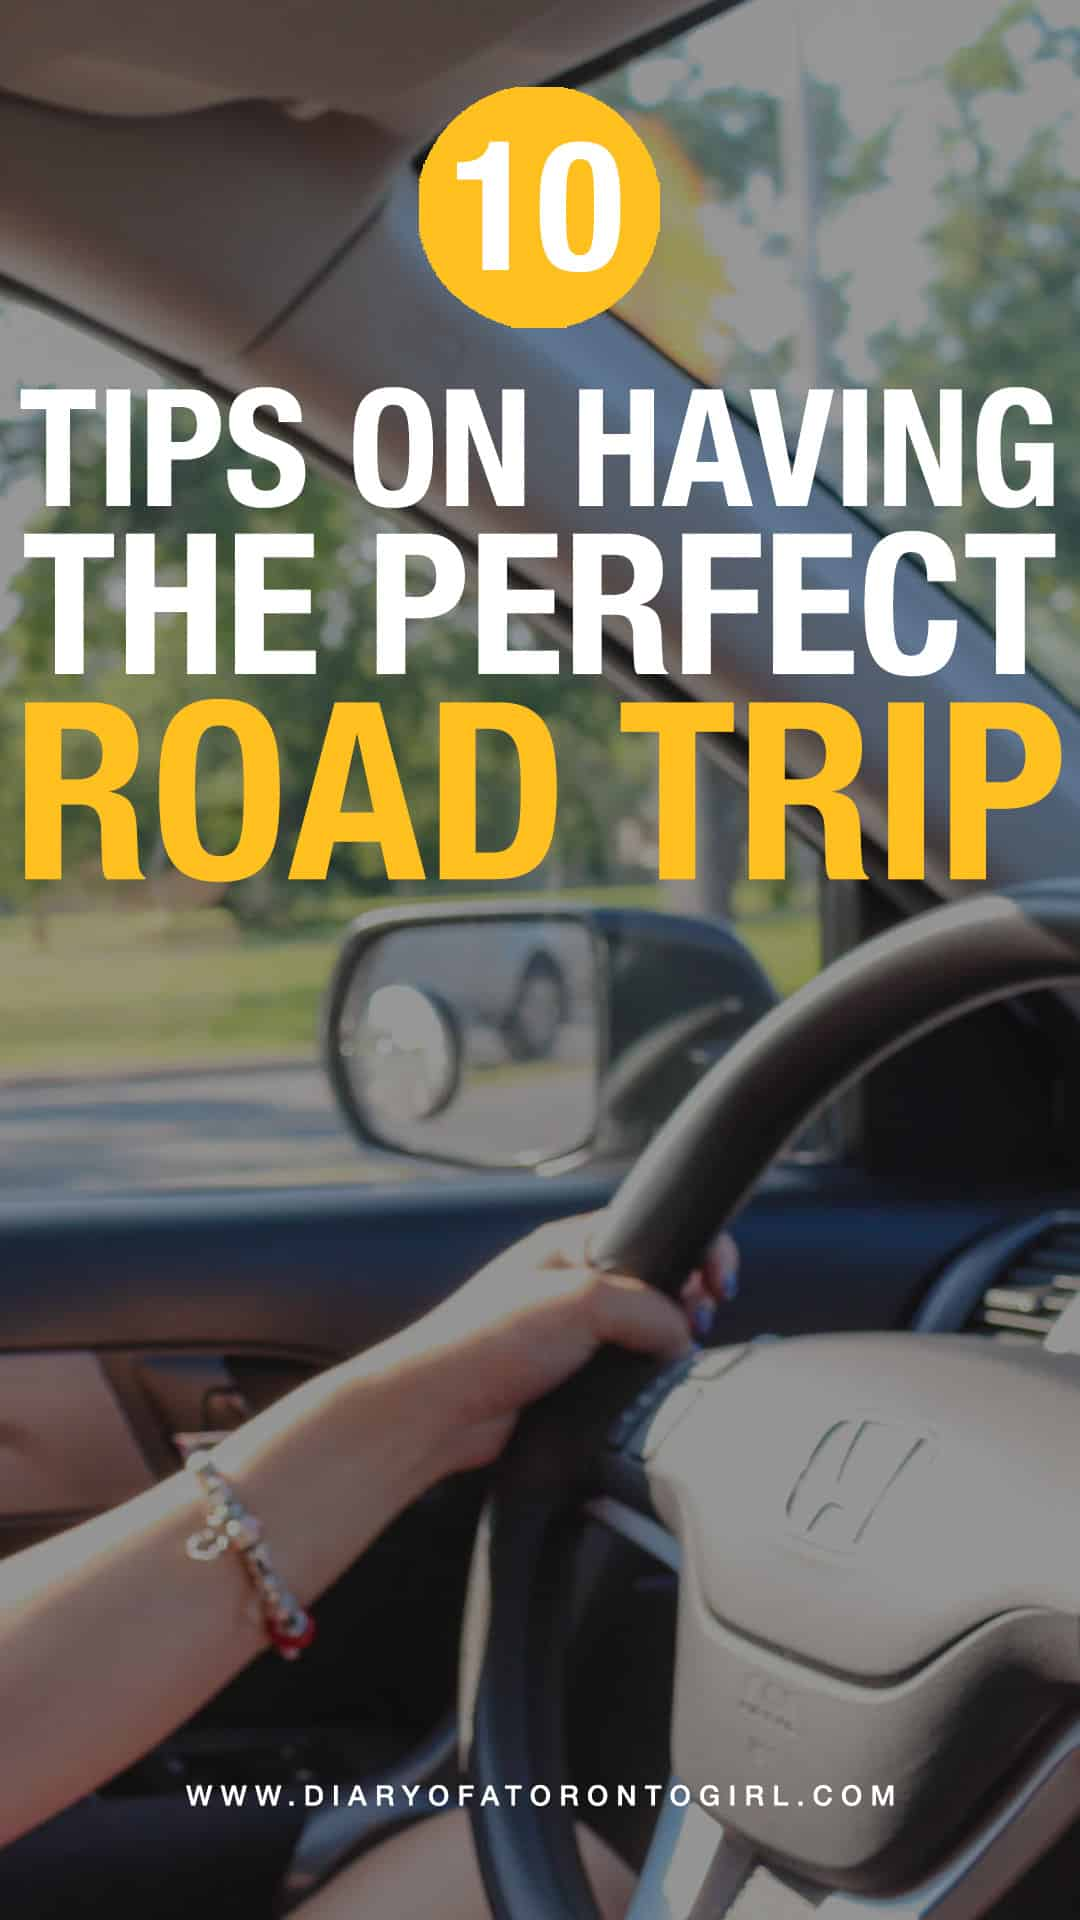 Looking for road trip tips to make the most of your getaway? Here are some hacks to make your road trip more comfortable and enjoyable!